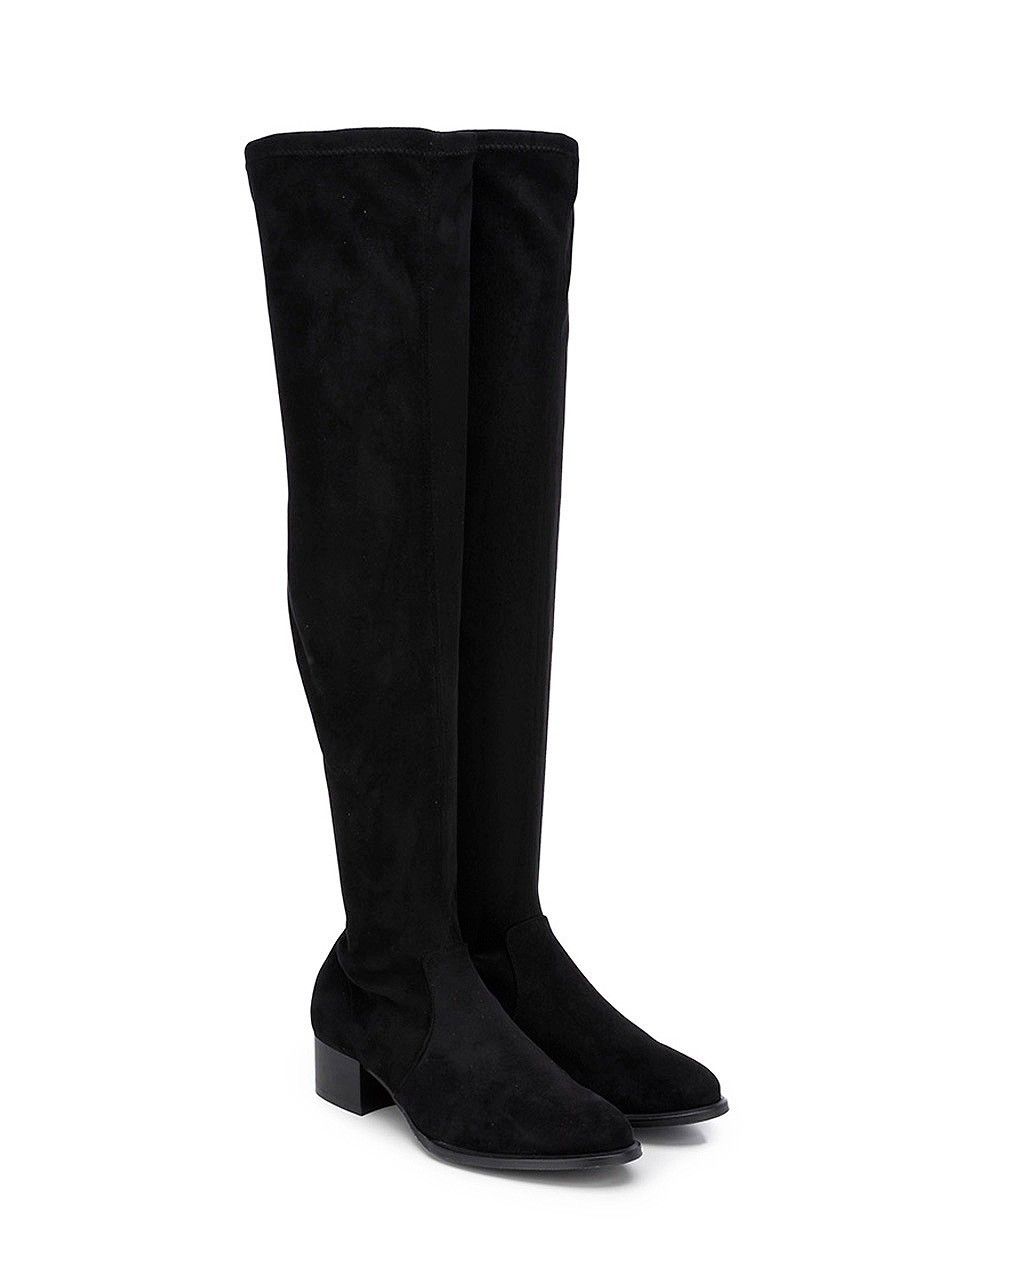 Cuple High Boots In Leather Black shop 25 70% | Gratis